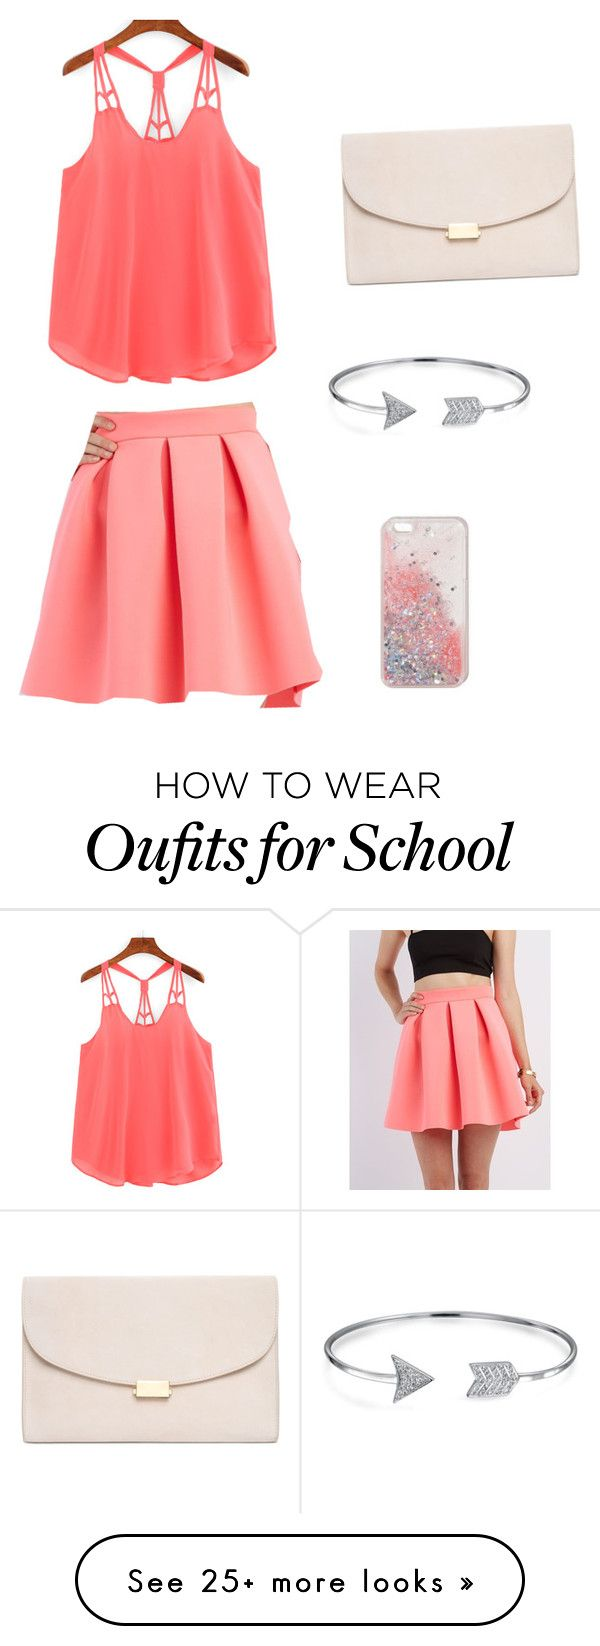 """School outfit"" by alenaictz on Polyvore featuring Charlotte Russe, Mansur Gavriel and Bling Jewelry"